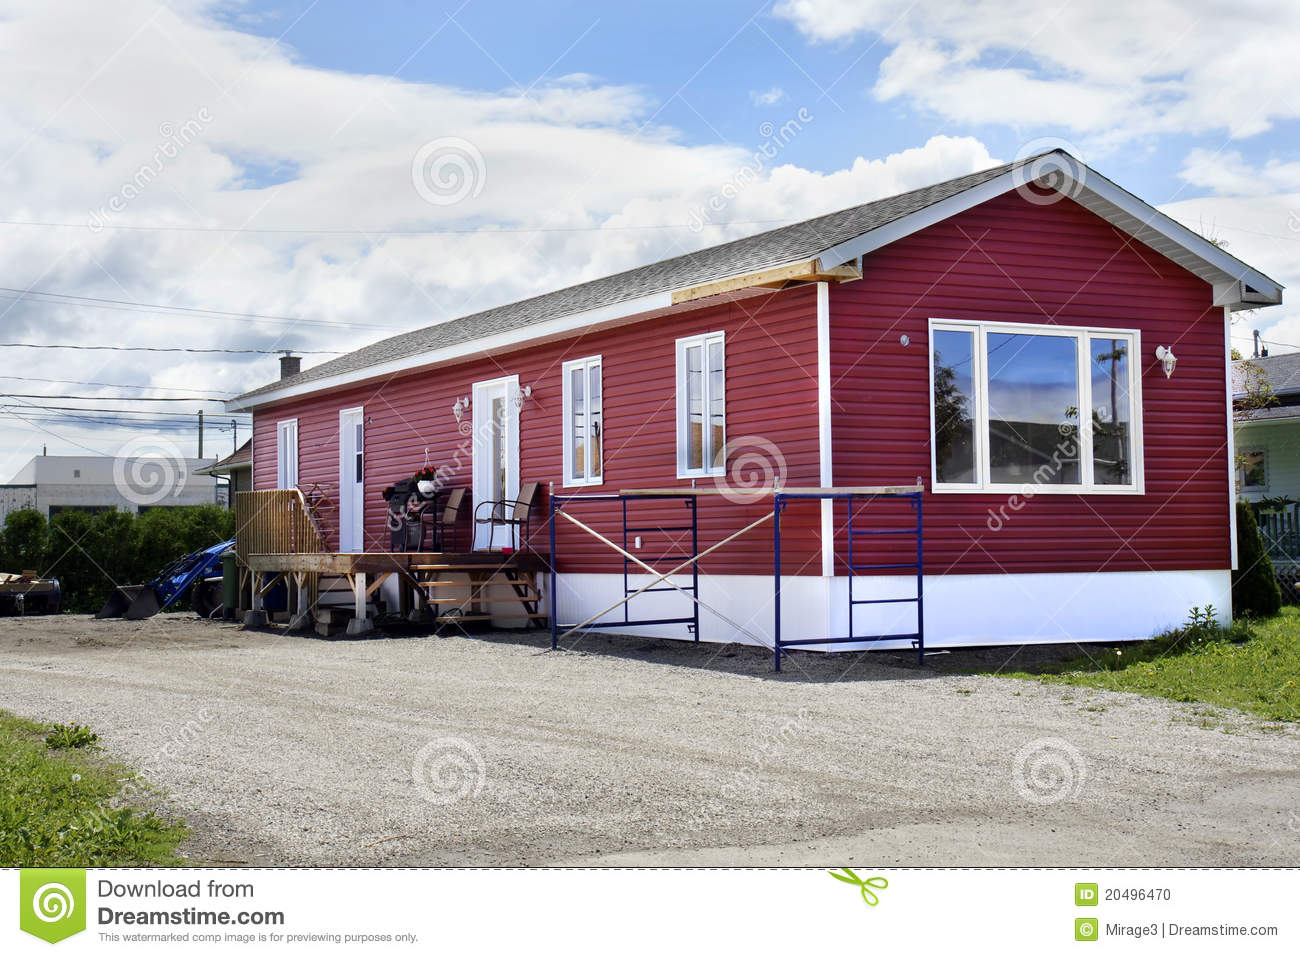 How To Get A Free Mobile Home on how to stuff homes, how to get a mansion, home free homes, how to get on housing, how to get cars,